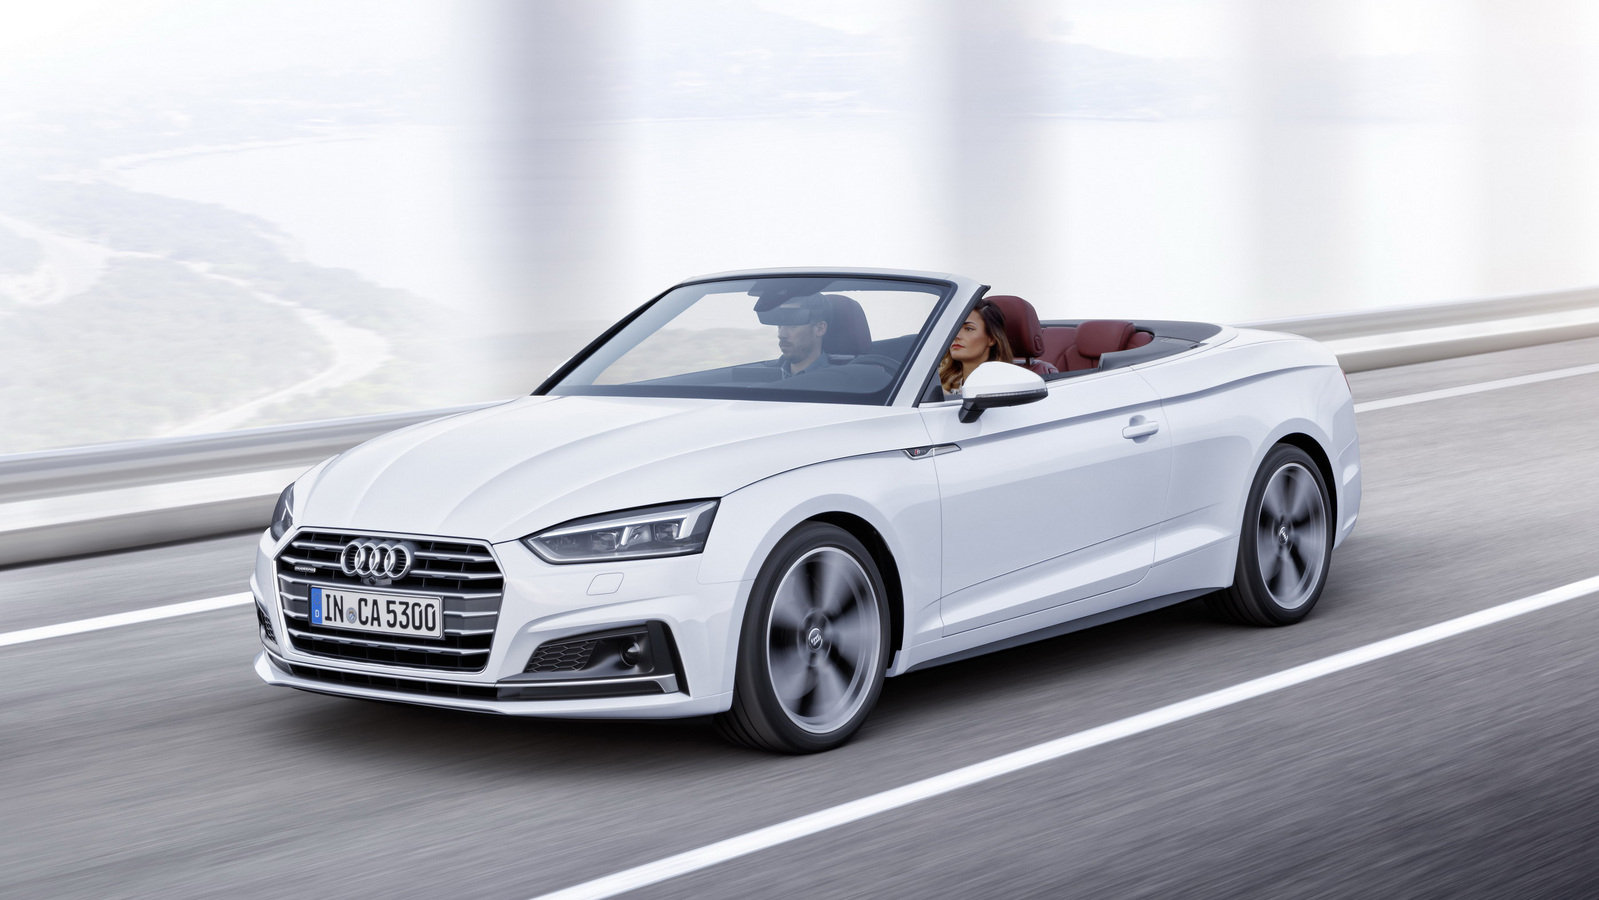 2017 audi a5 convertible picture 694458 car review top speed. Black Bedroom Furniture Sets. Home Design Ideas